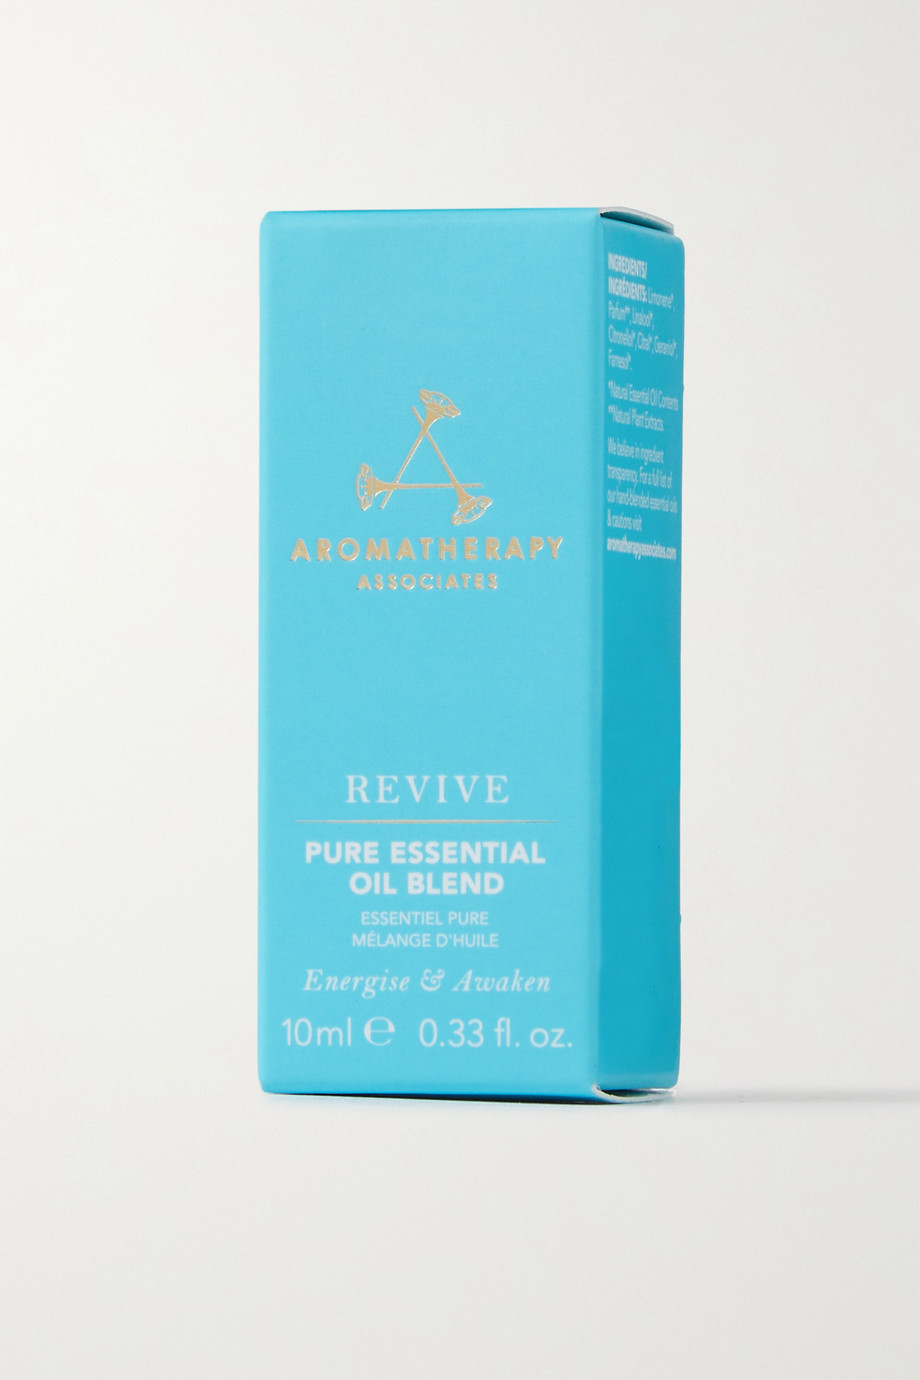 Aromatherapy Associates Revive Pure Essential Oil Blend, 10ml